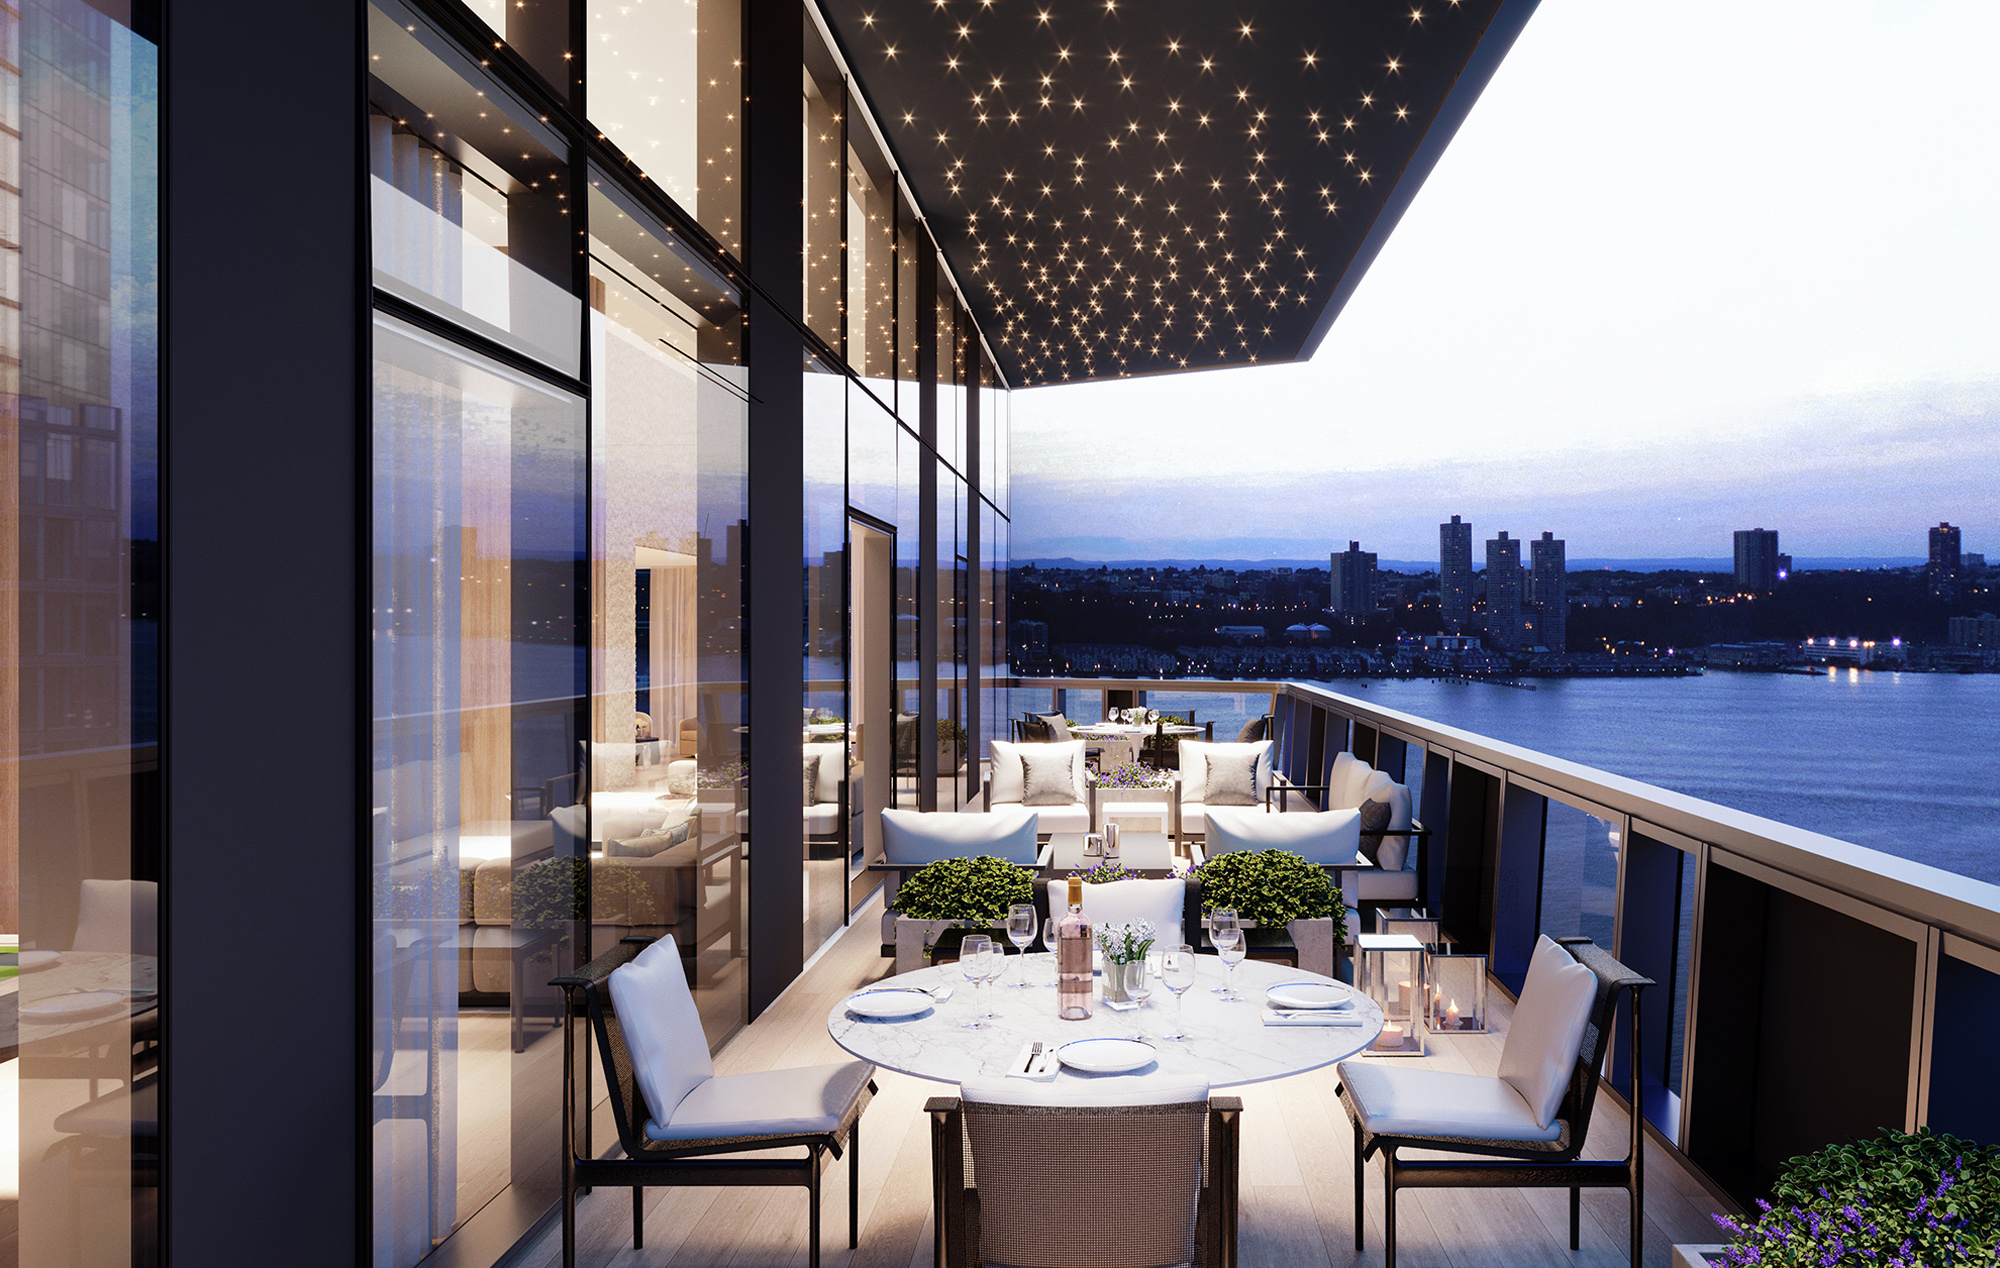 Views of the New York Skyline from Three Waterline Square's Terrace